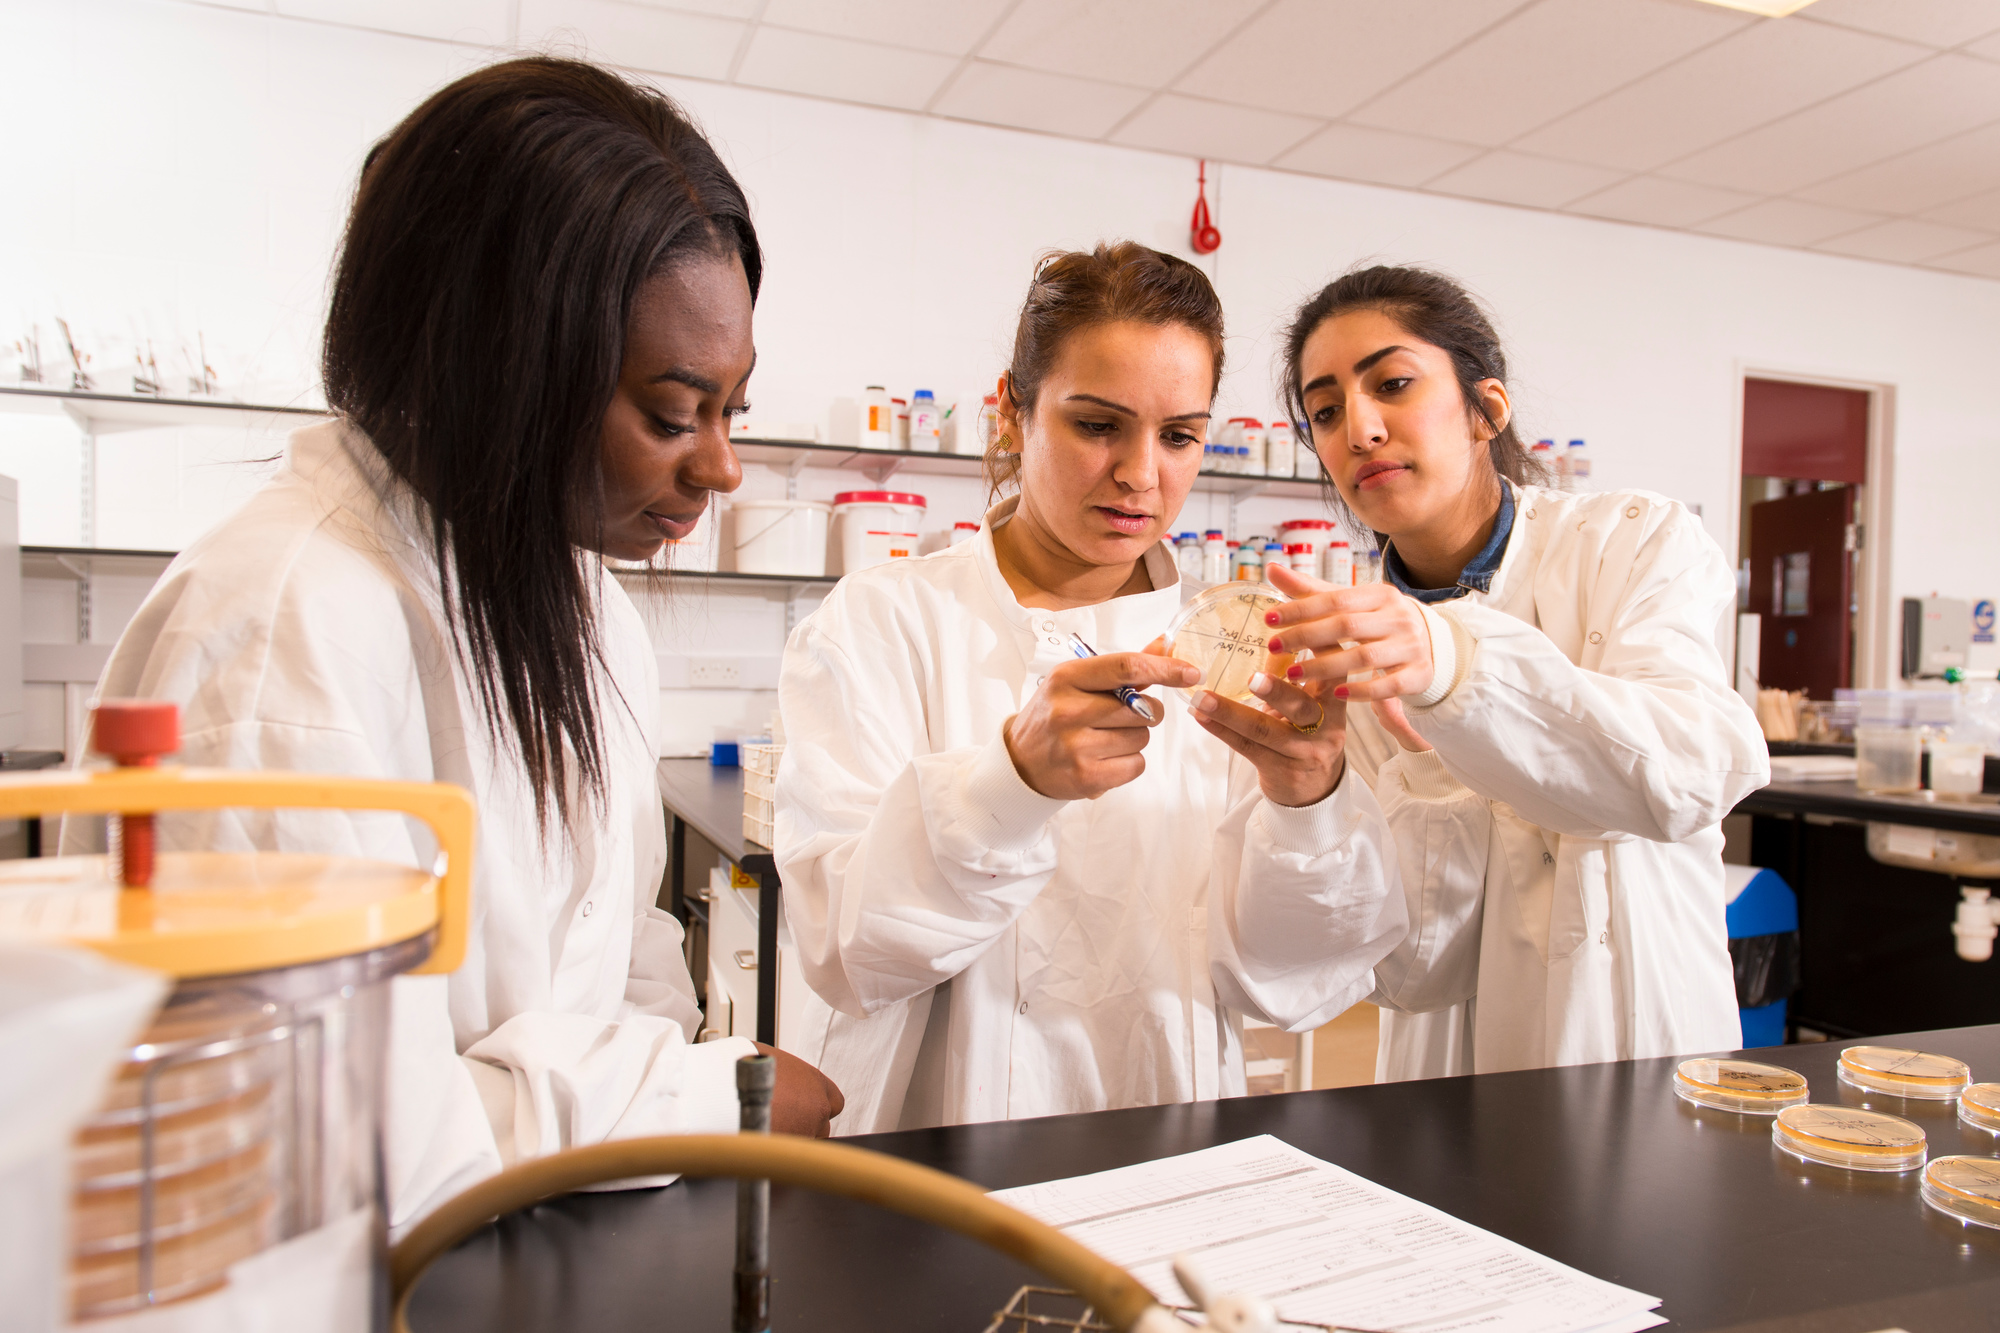 A group of three female students looking into a petridish in a lab